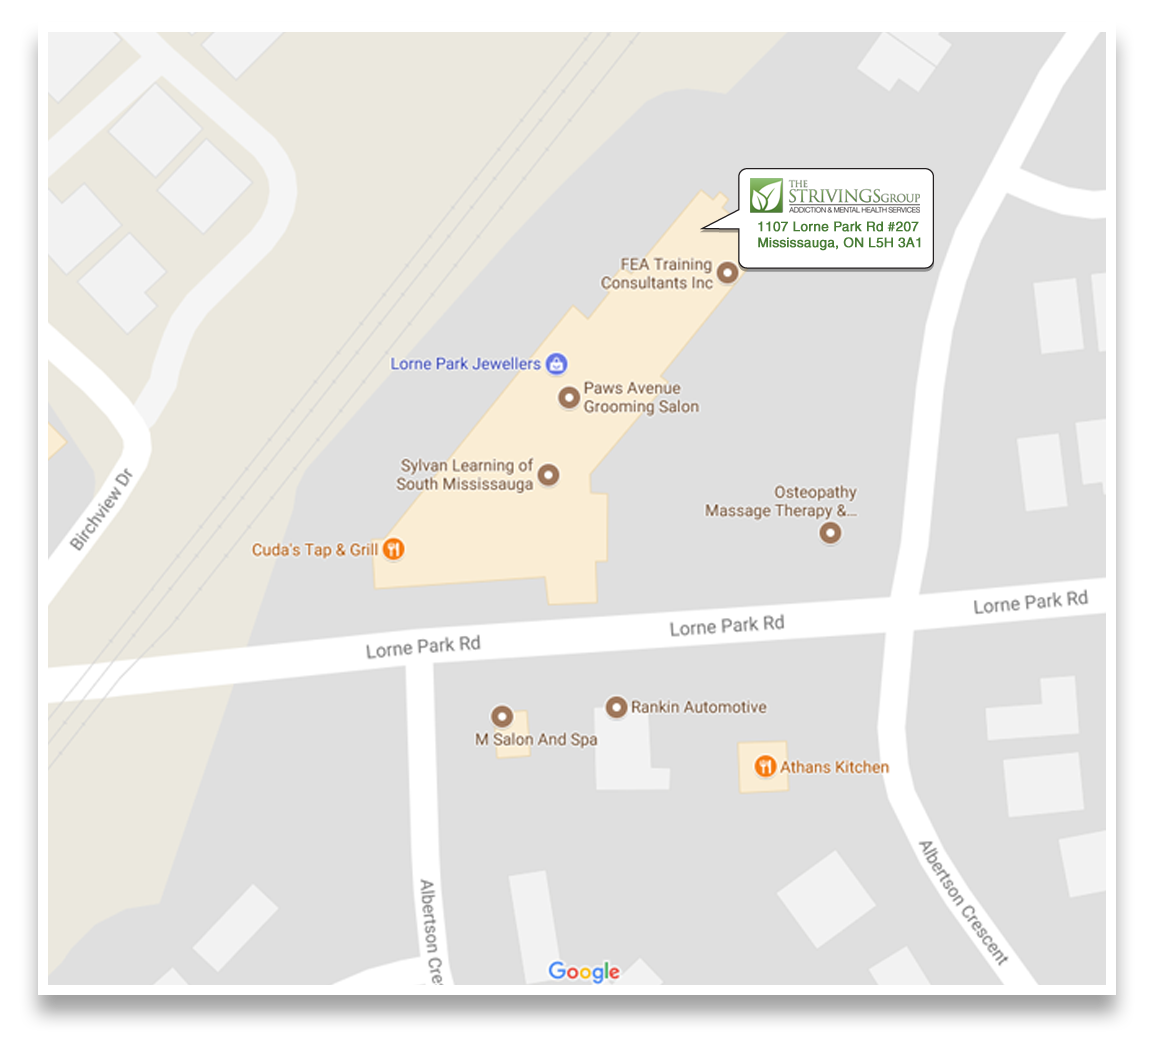 map-of-strivings-group-mississauga-location-lorne-park-rd-queen-st-w-L5H3A1